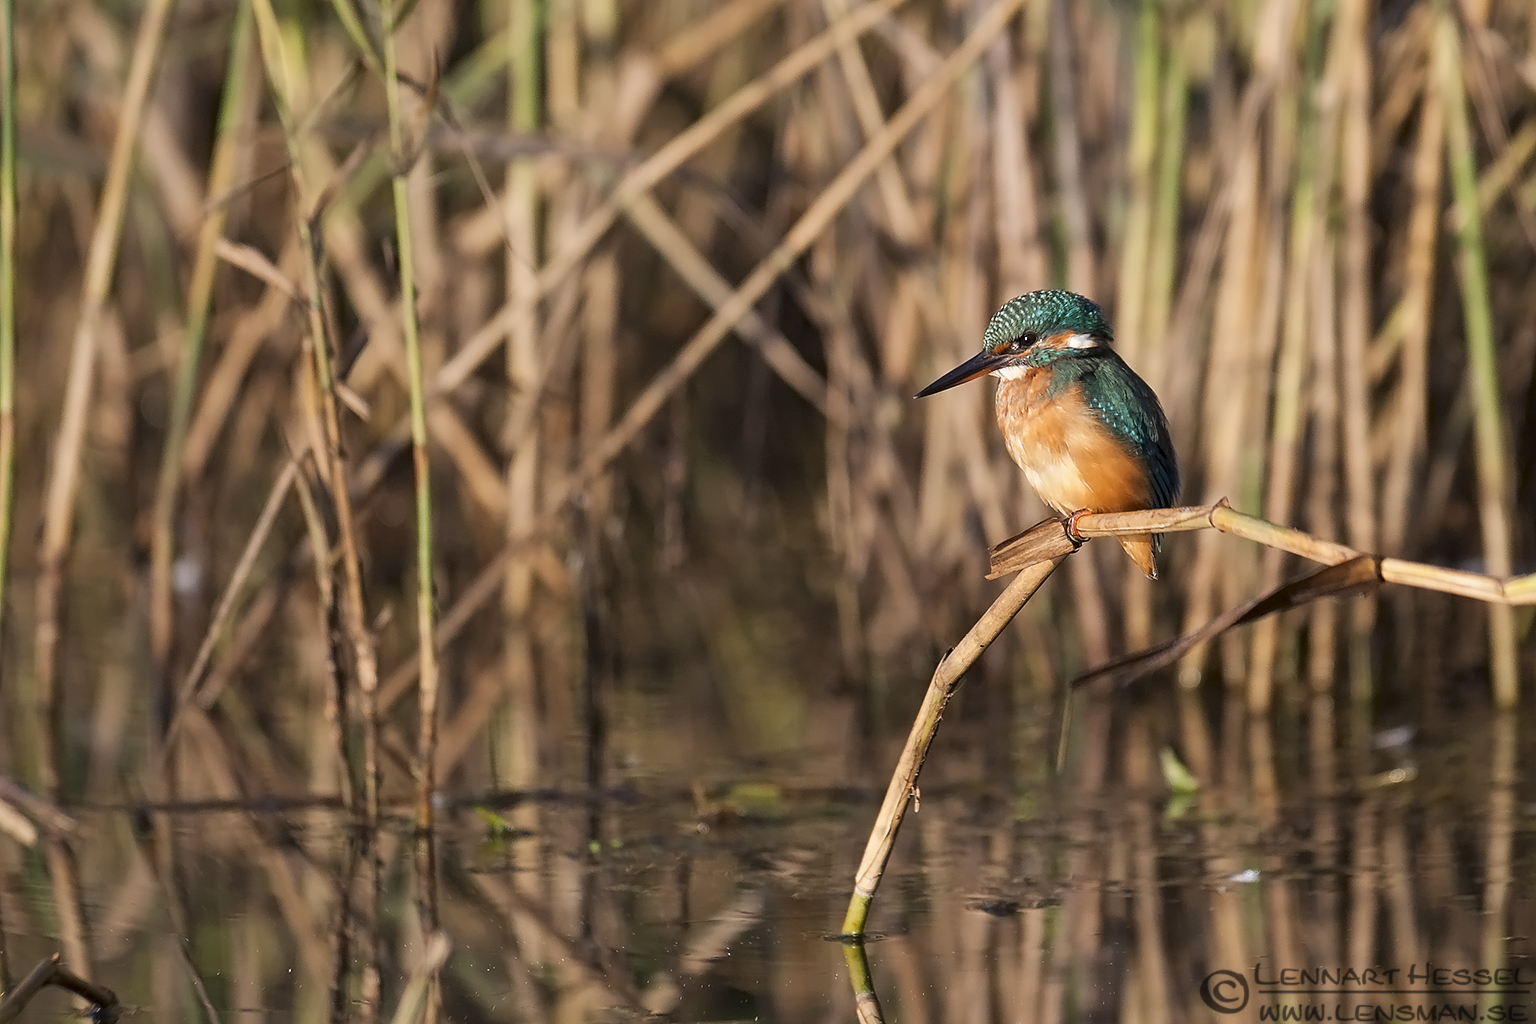 Common Kingfisher in habitat